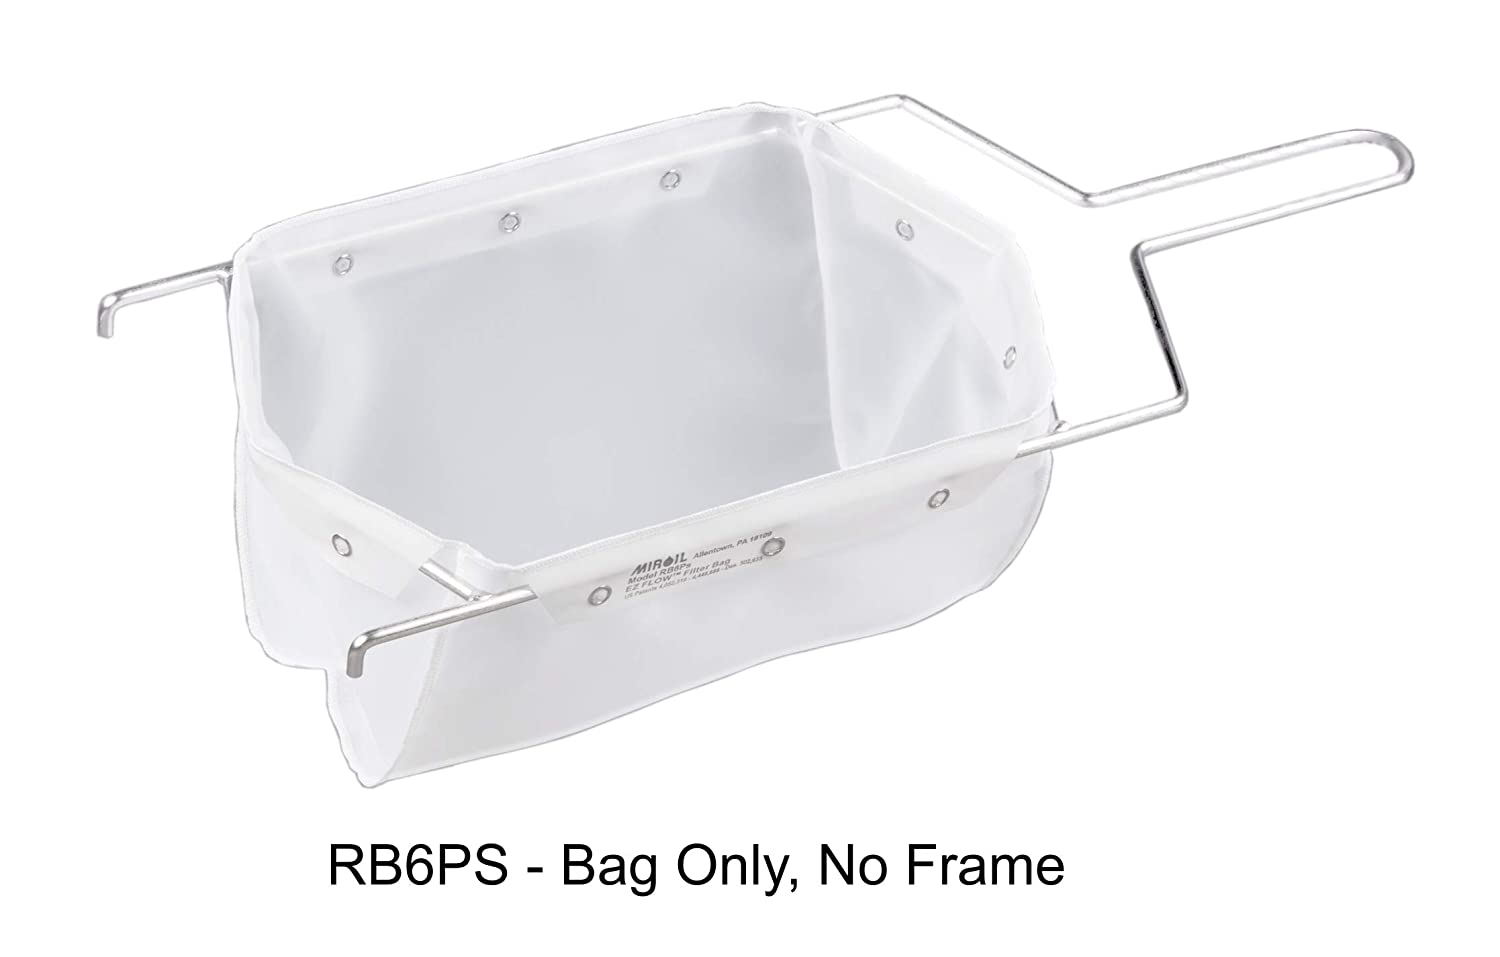 Miroil | RB6PS Fryer Filter Bag Only | MirOil EZ Flow Filter Bag | Part 12852| Use to Filter Fry Oil | Suitable for 70 lb Polishing Oil | Durable, Easy to Clean with Hot Water | No Frame inc